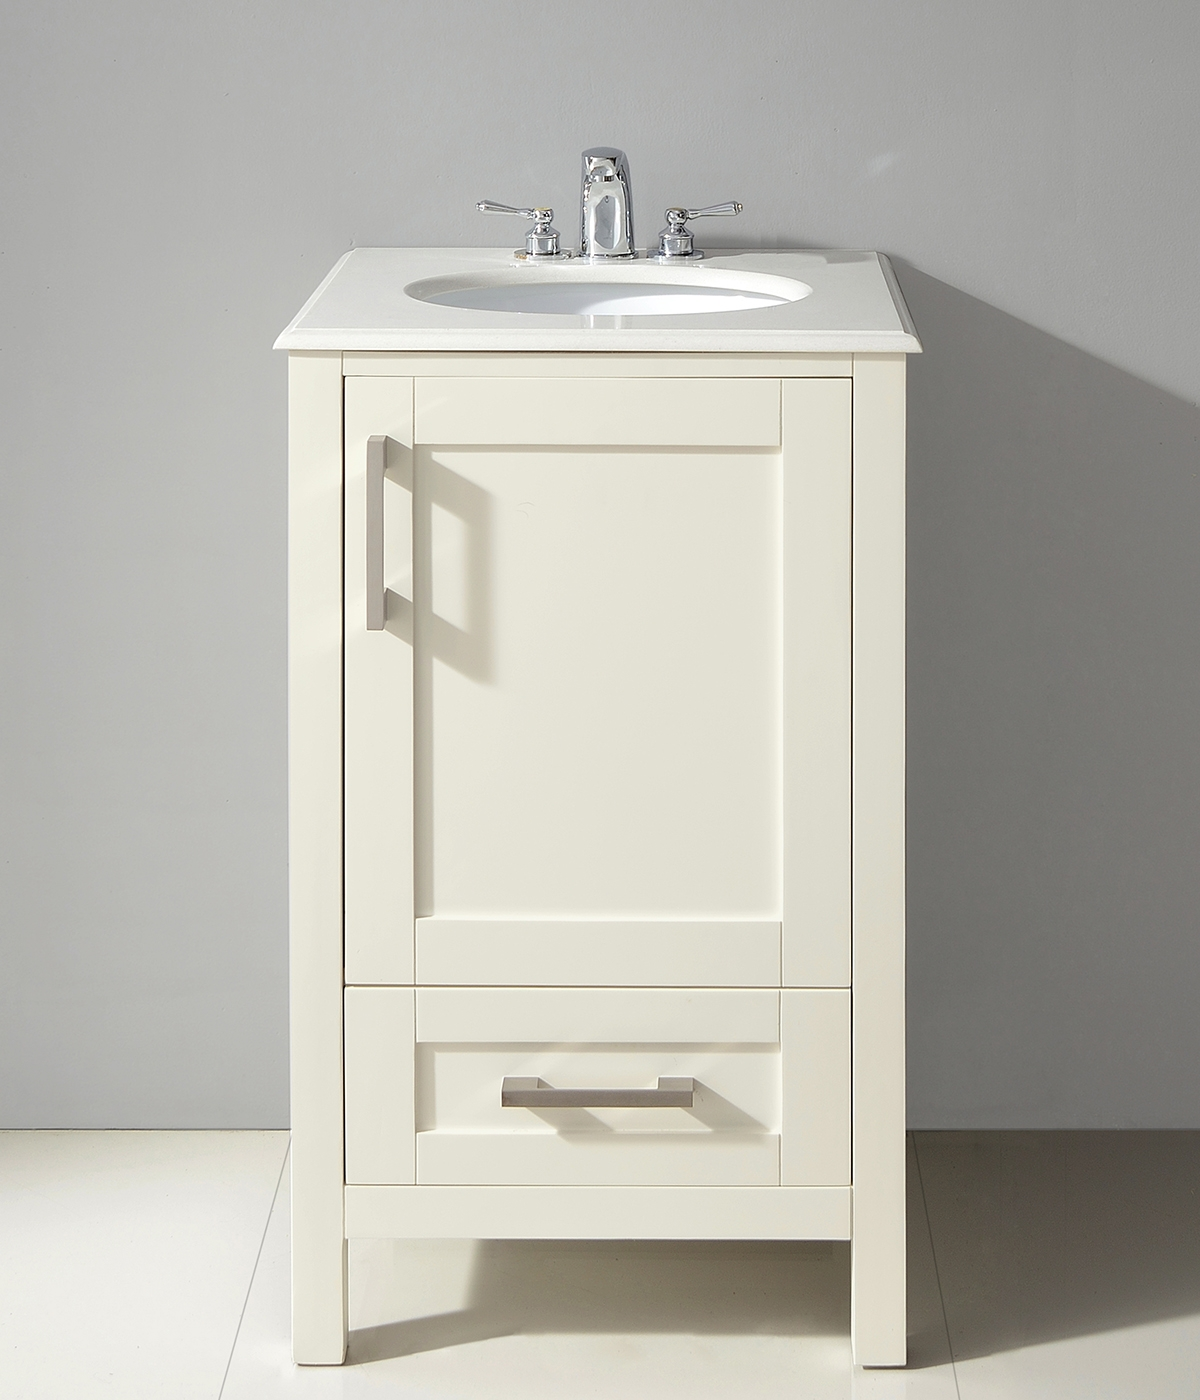 Bathroom Vanity Under 20 Inches Wide